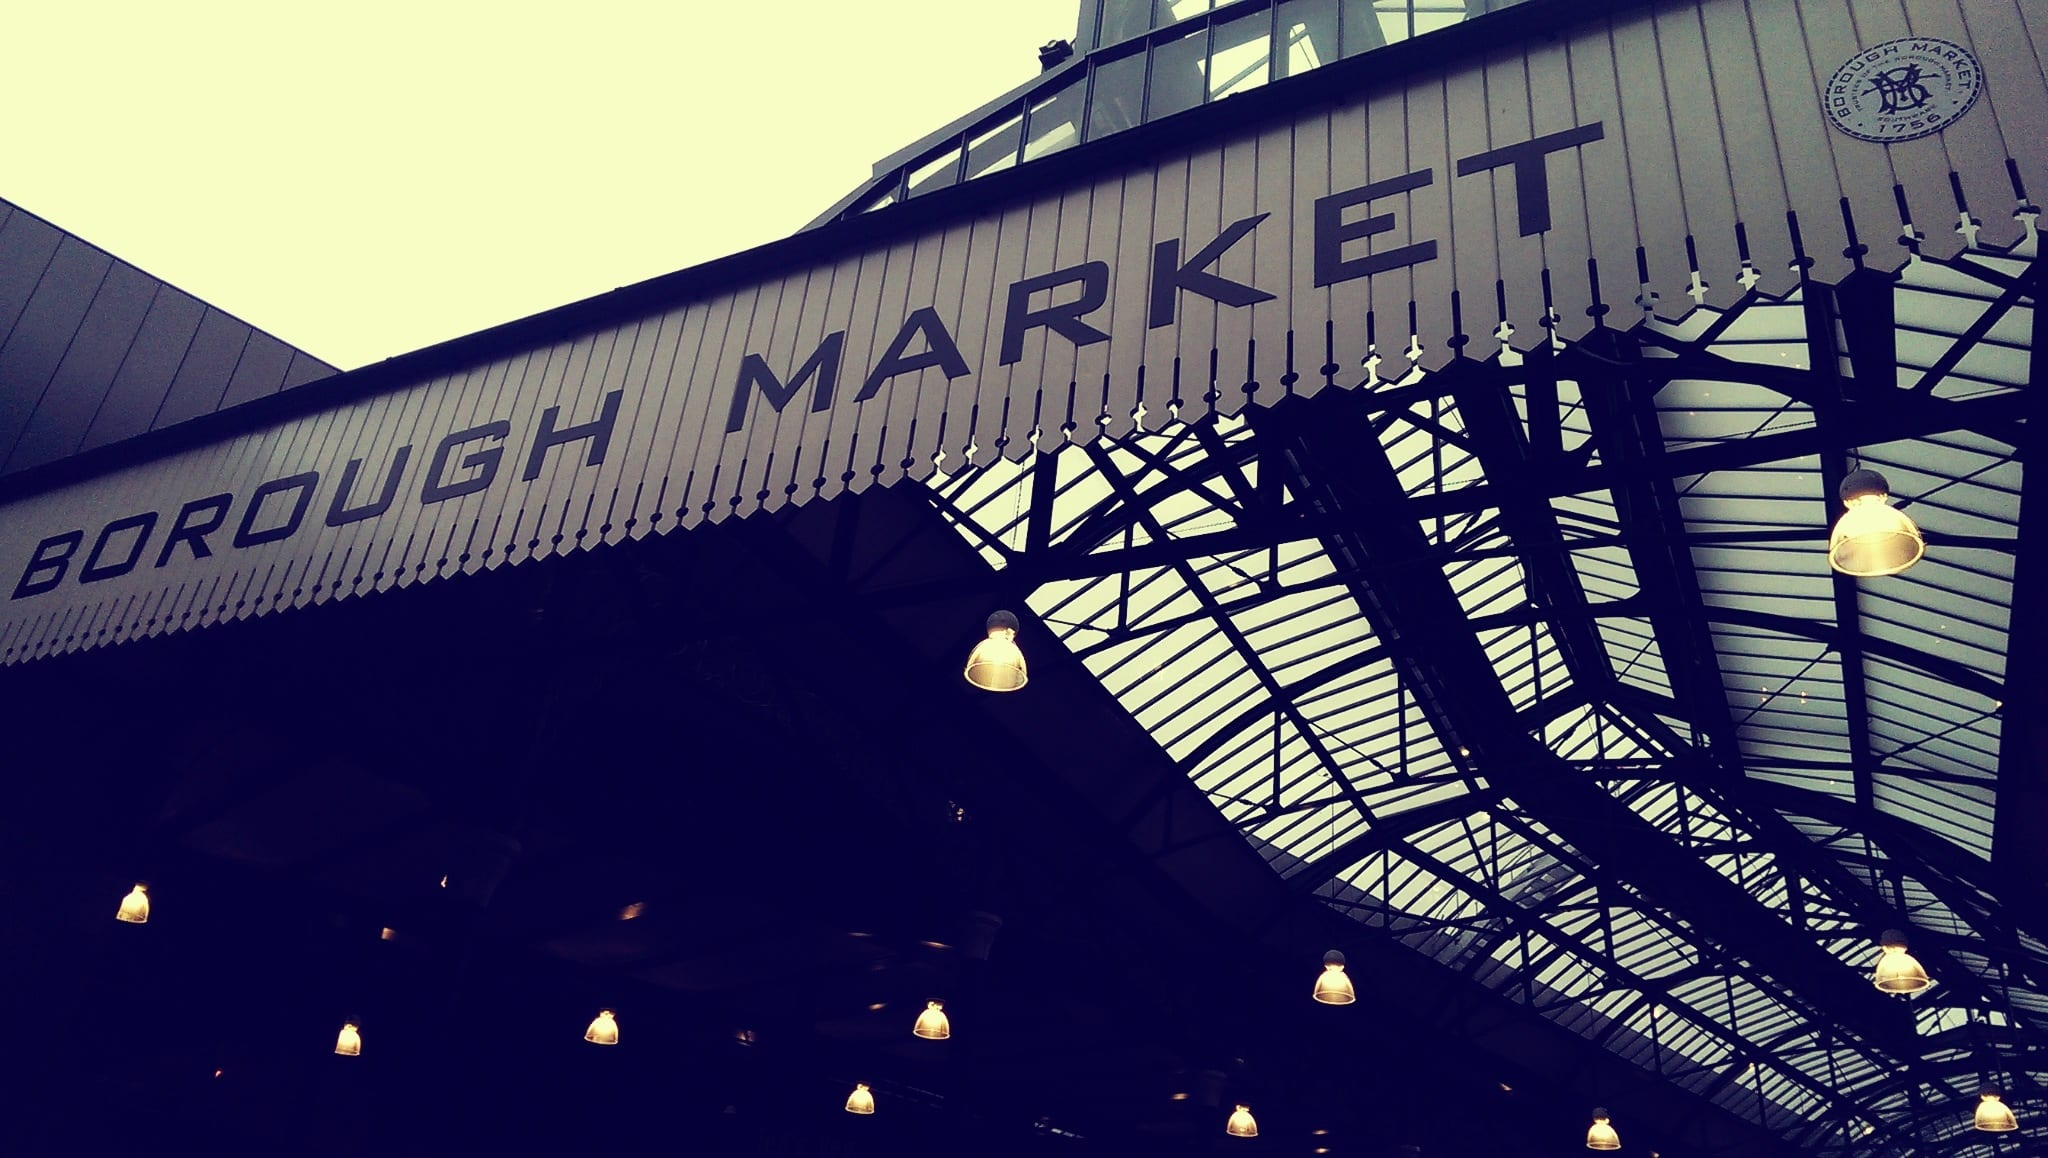 London Borough Market